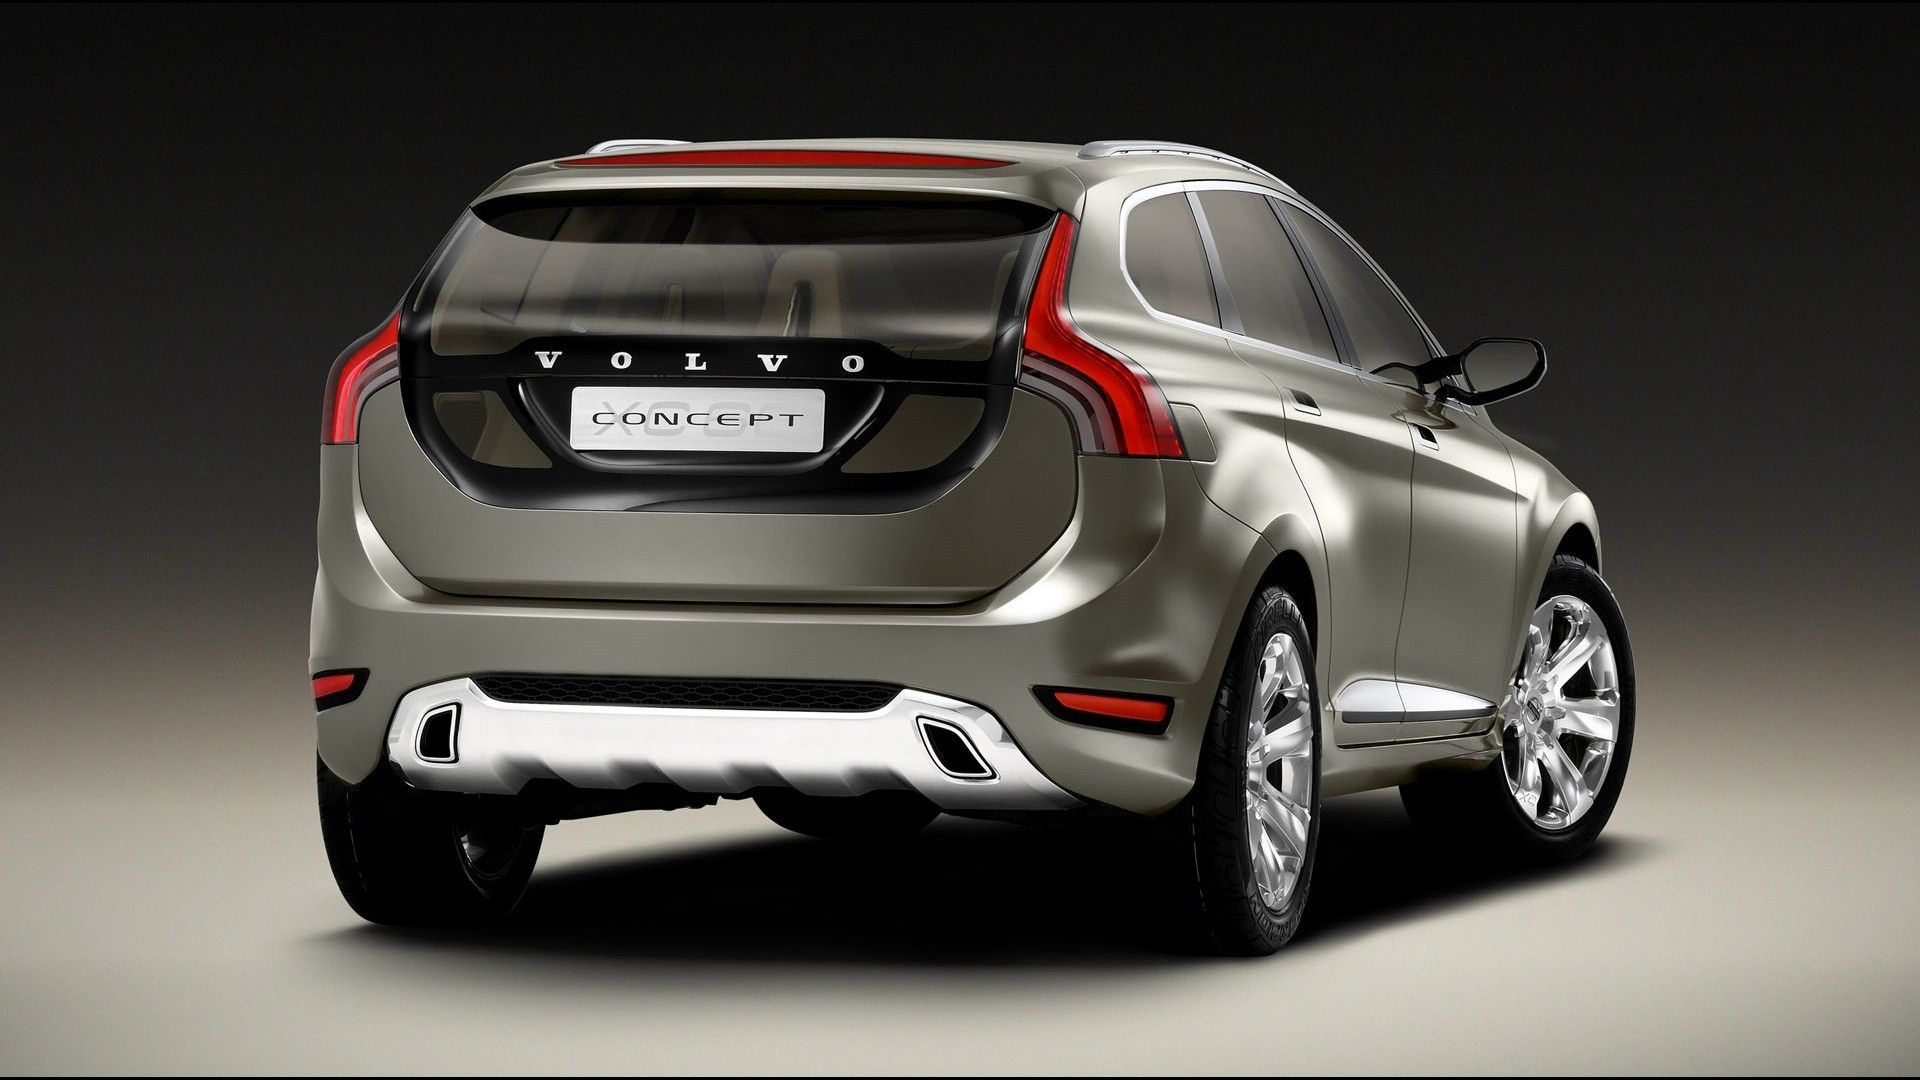 concept vehicles cars concept cars suv volvo xc60 concept fresh new hd wallpaper best